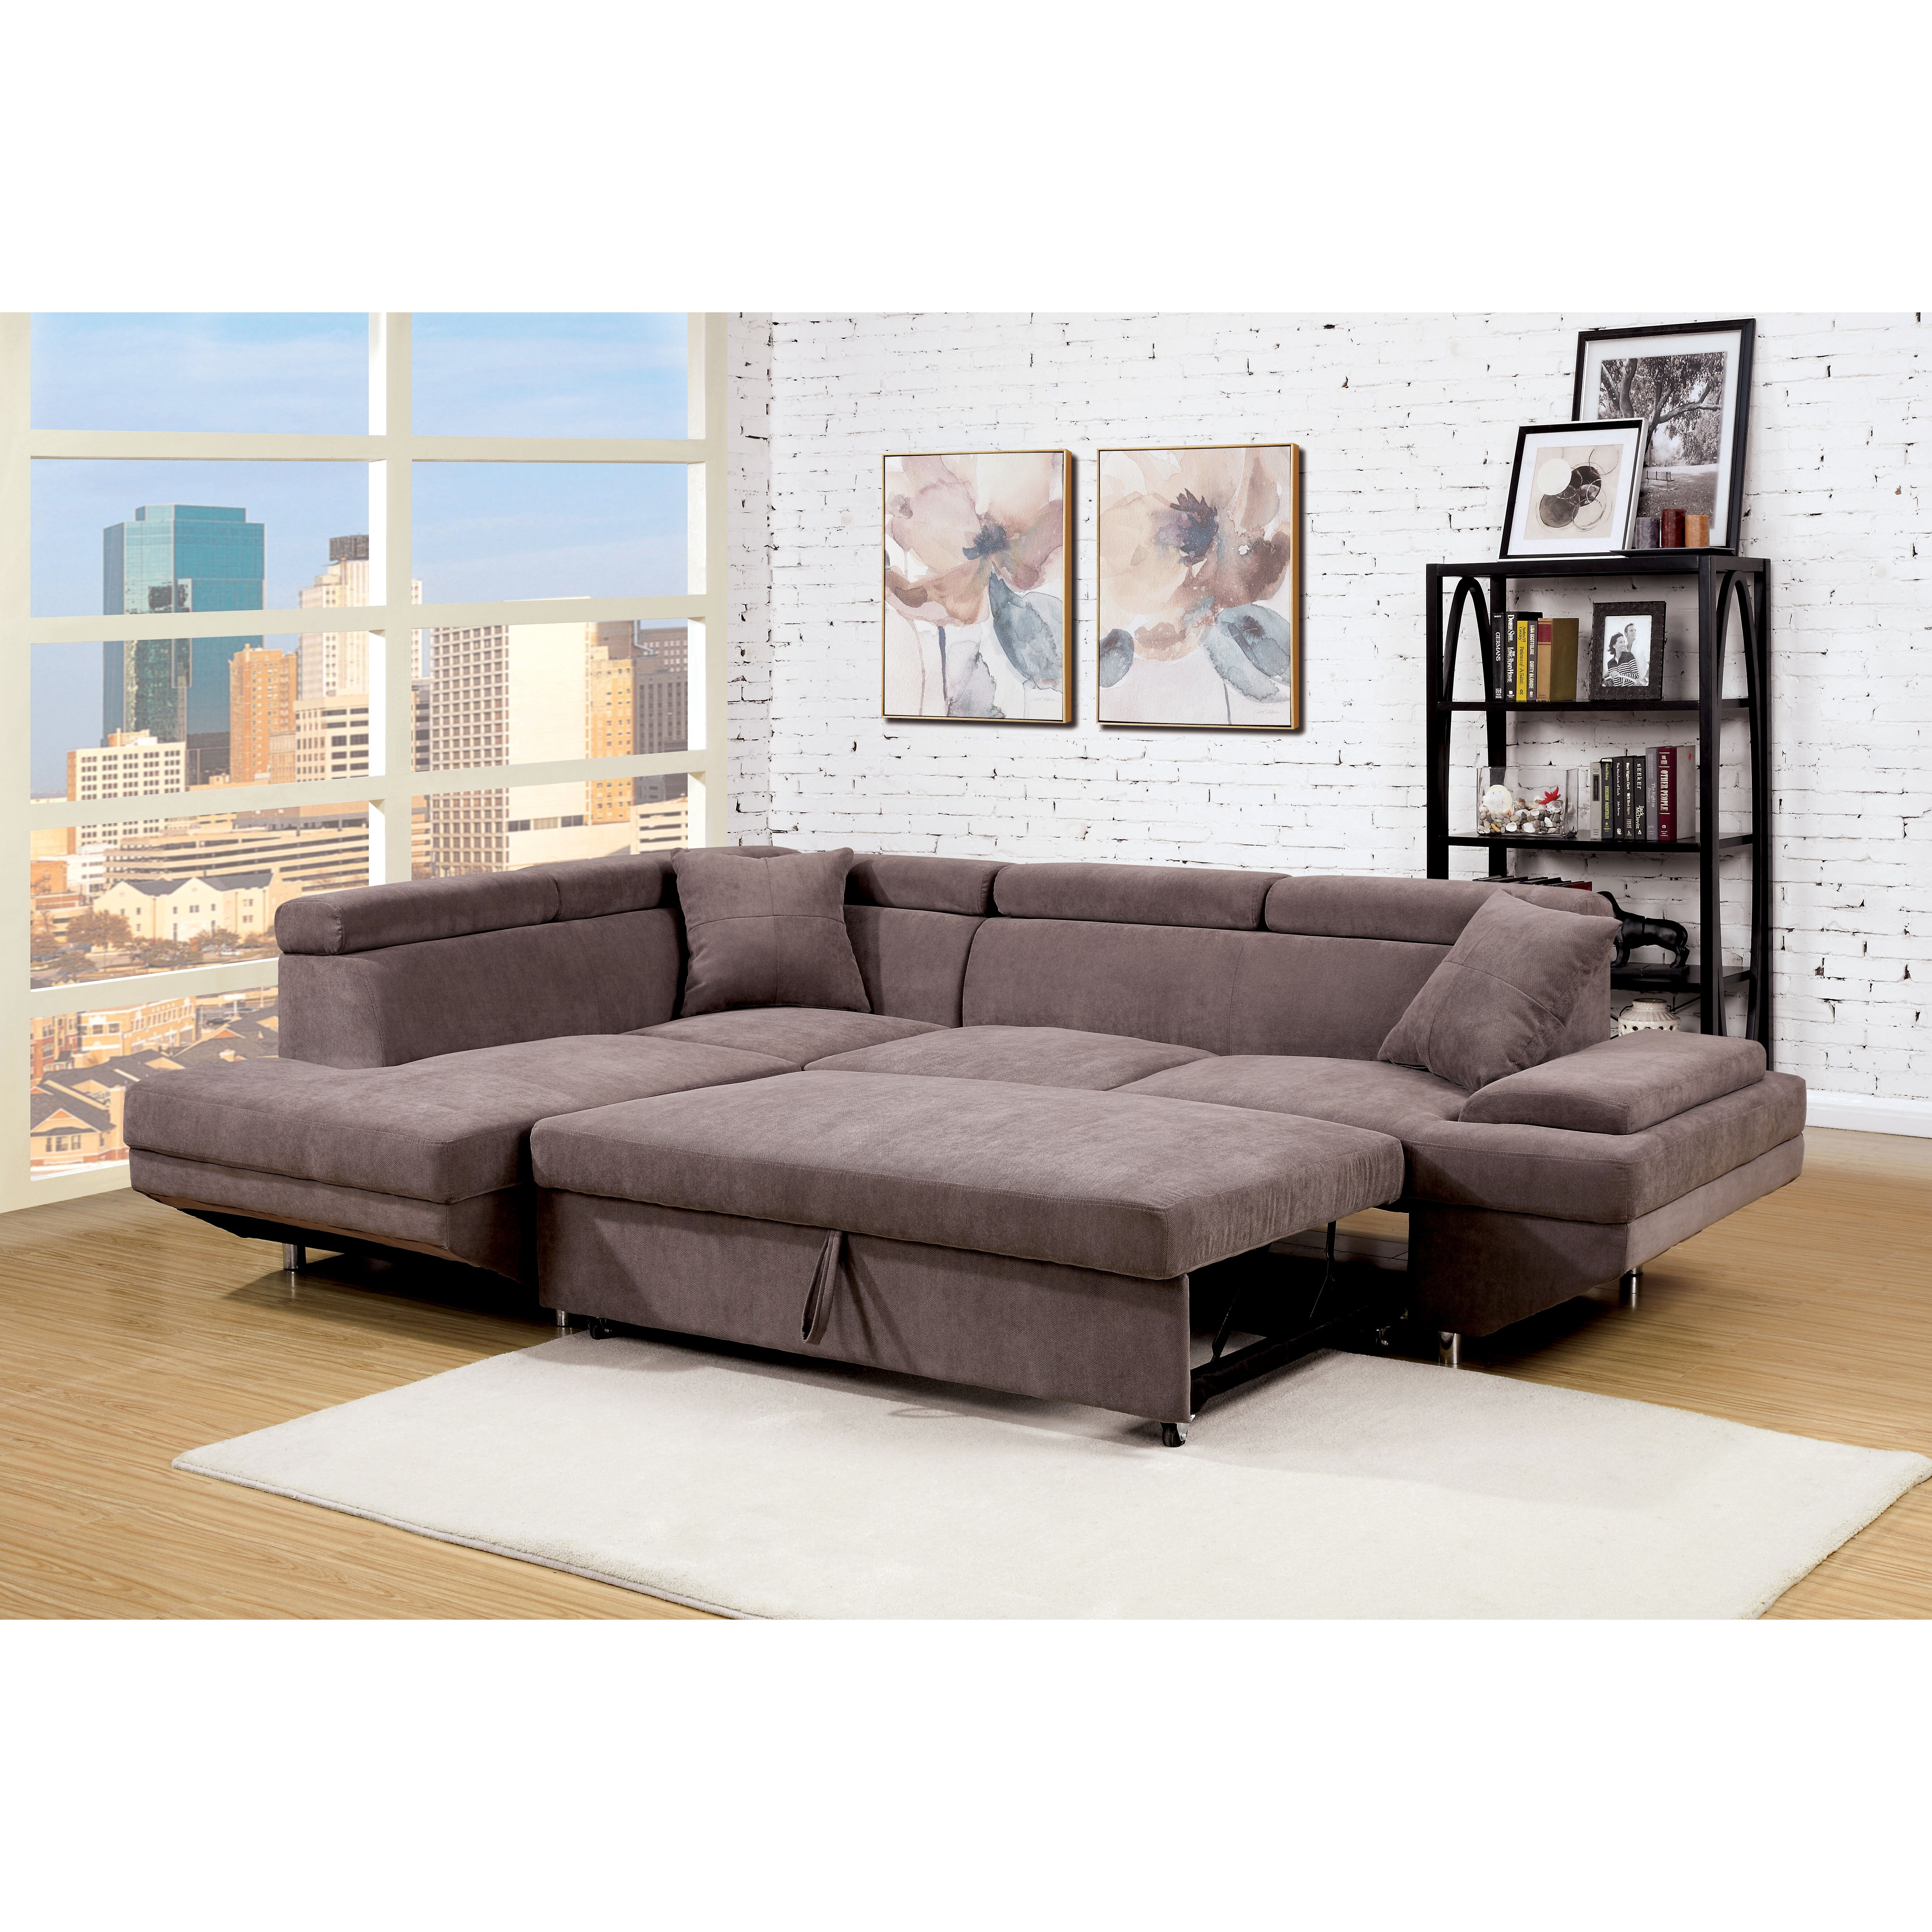 Wade Logan Sylvester Contemporary Sleeper Sofa & Reviews